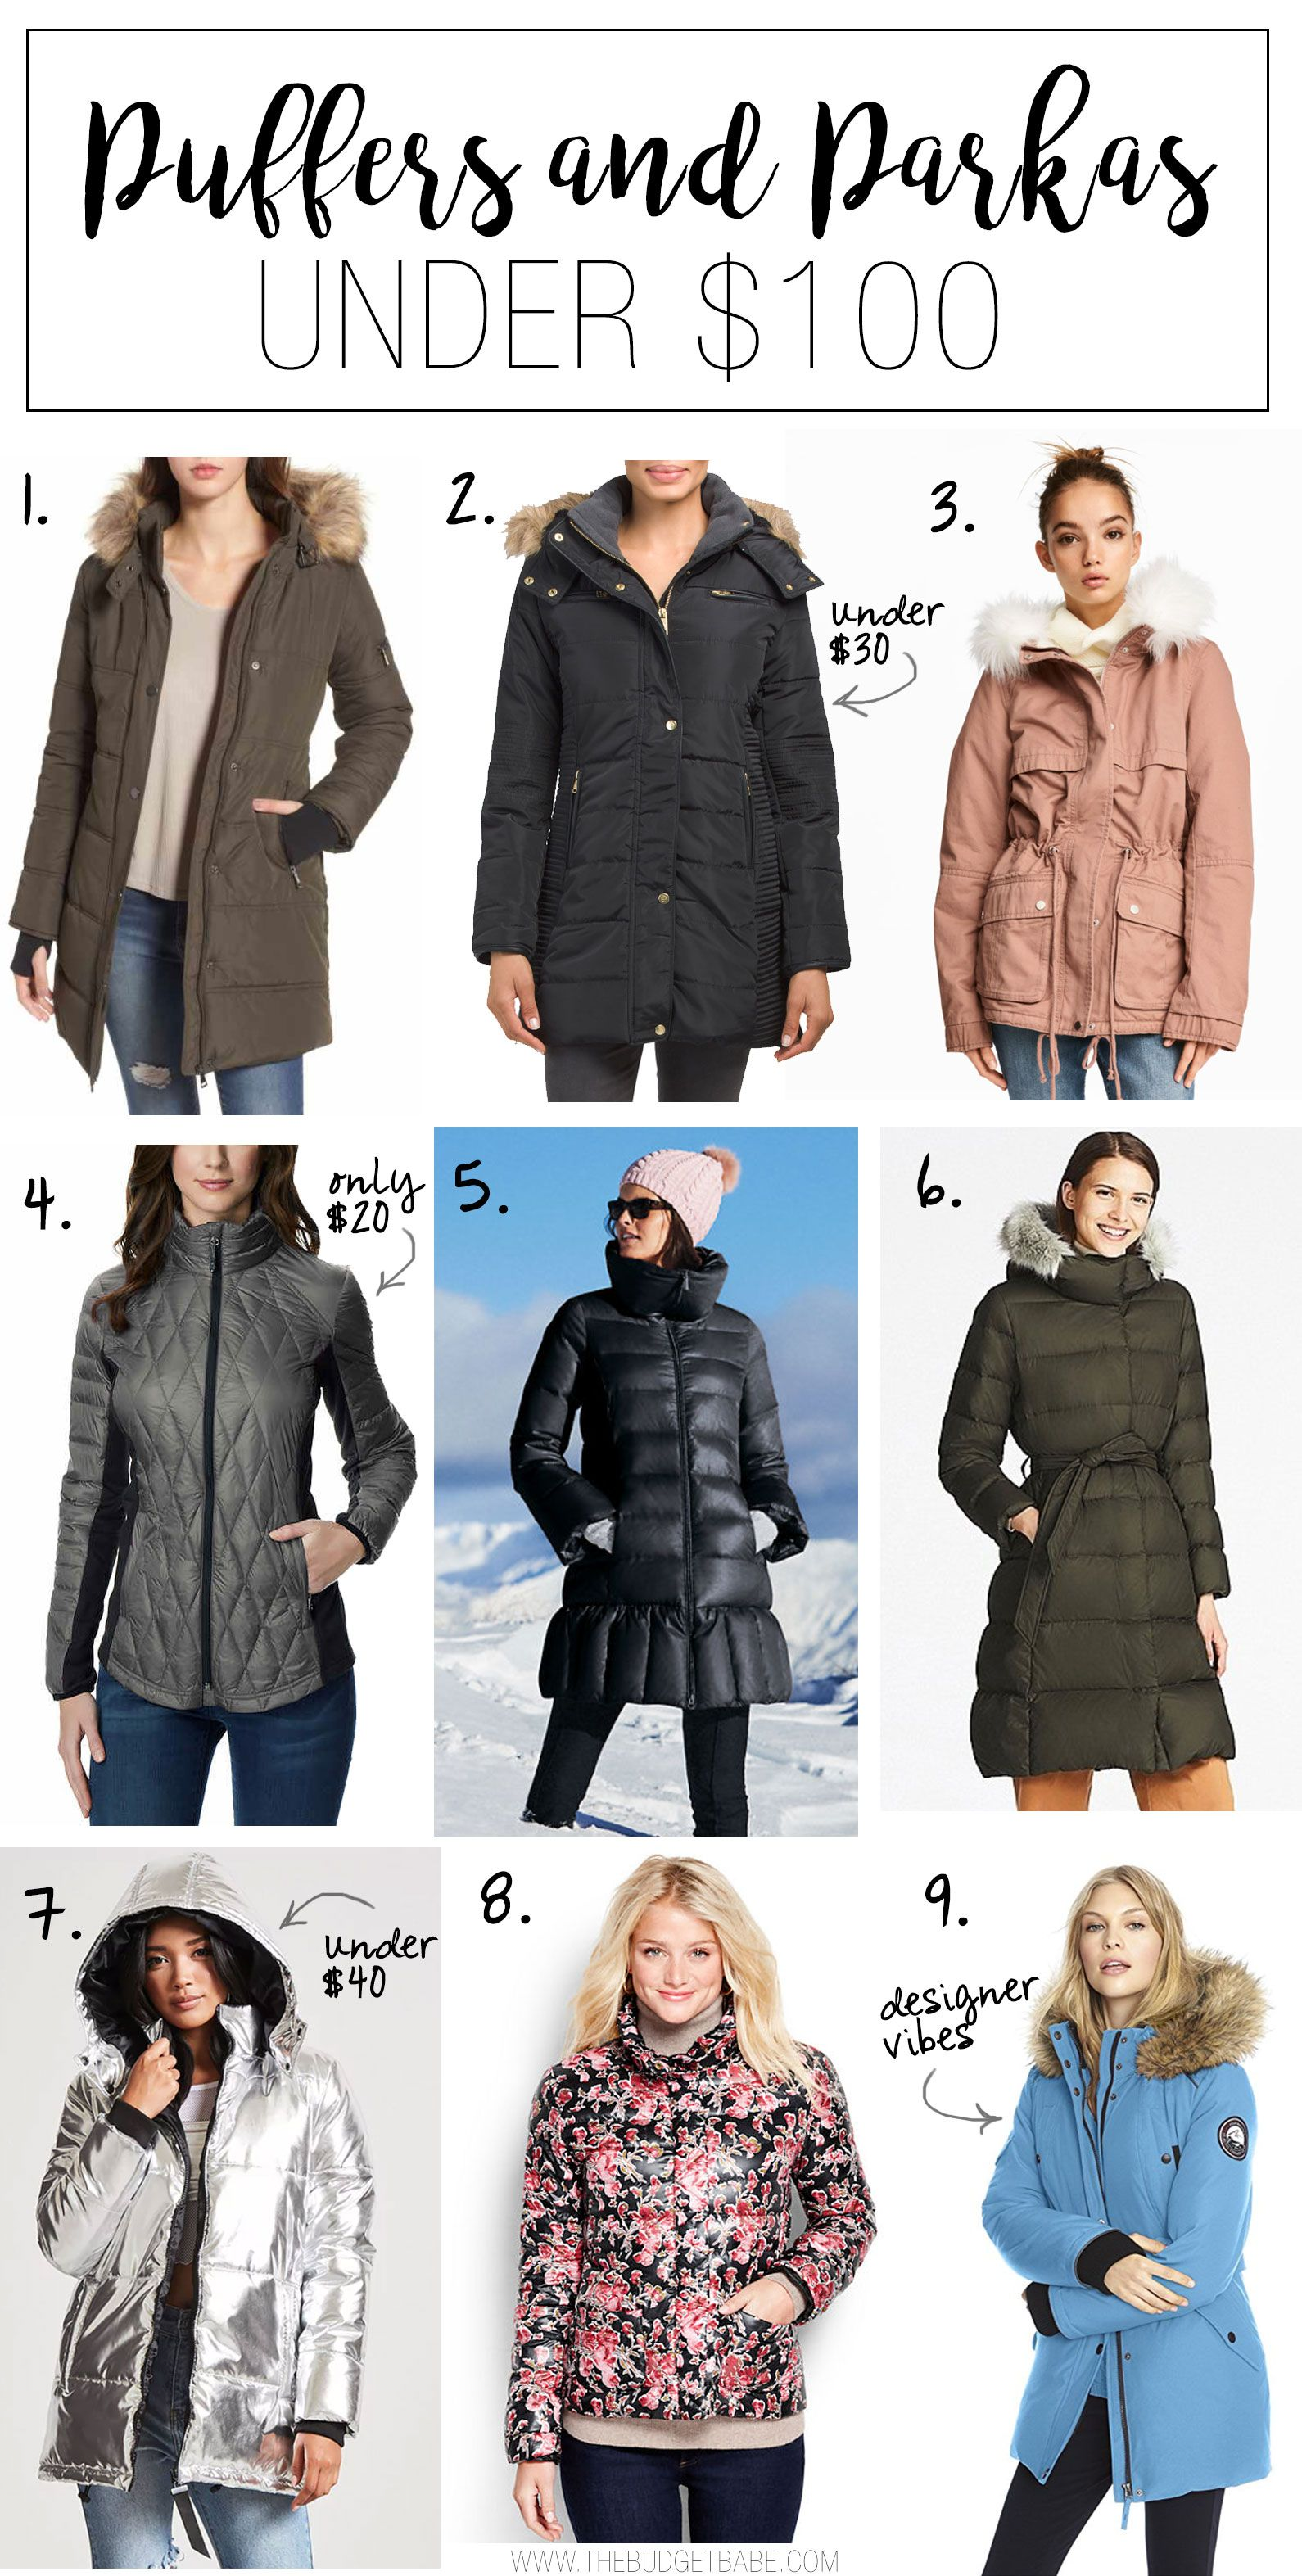 Puffers and Parkas Under $100 | Shopping sites, Parka and Winter